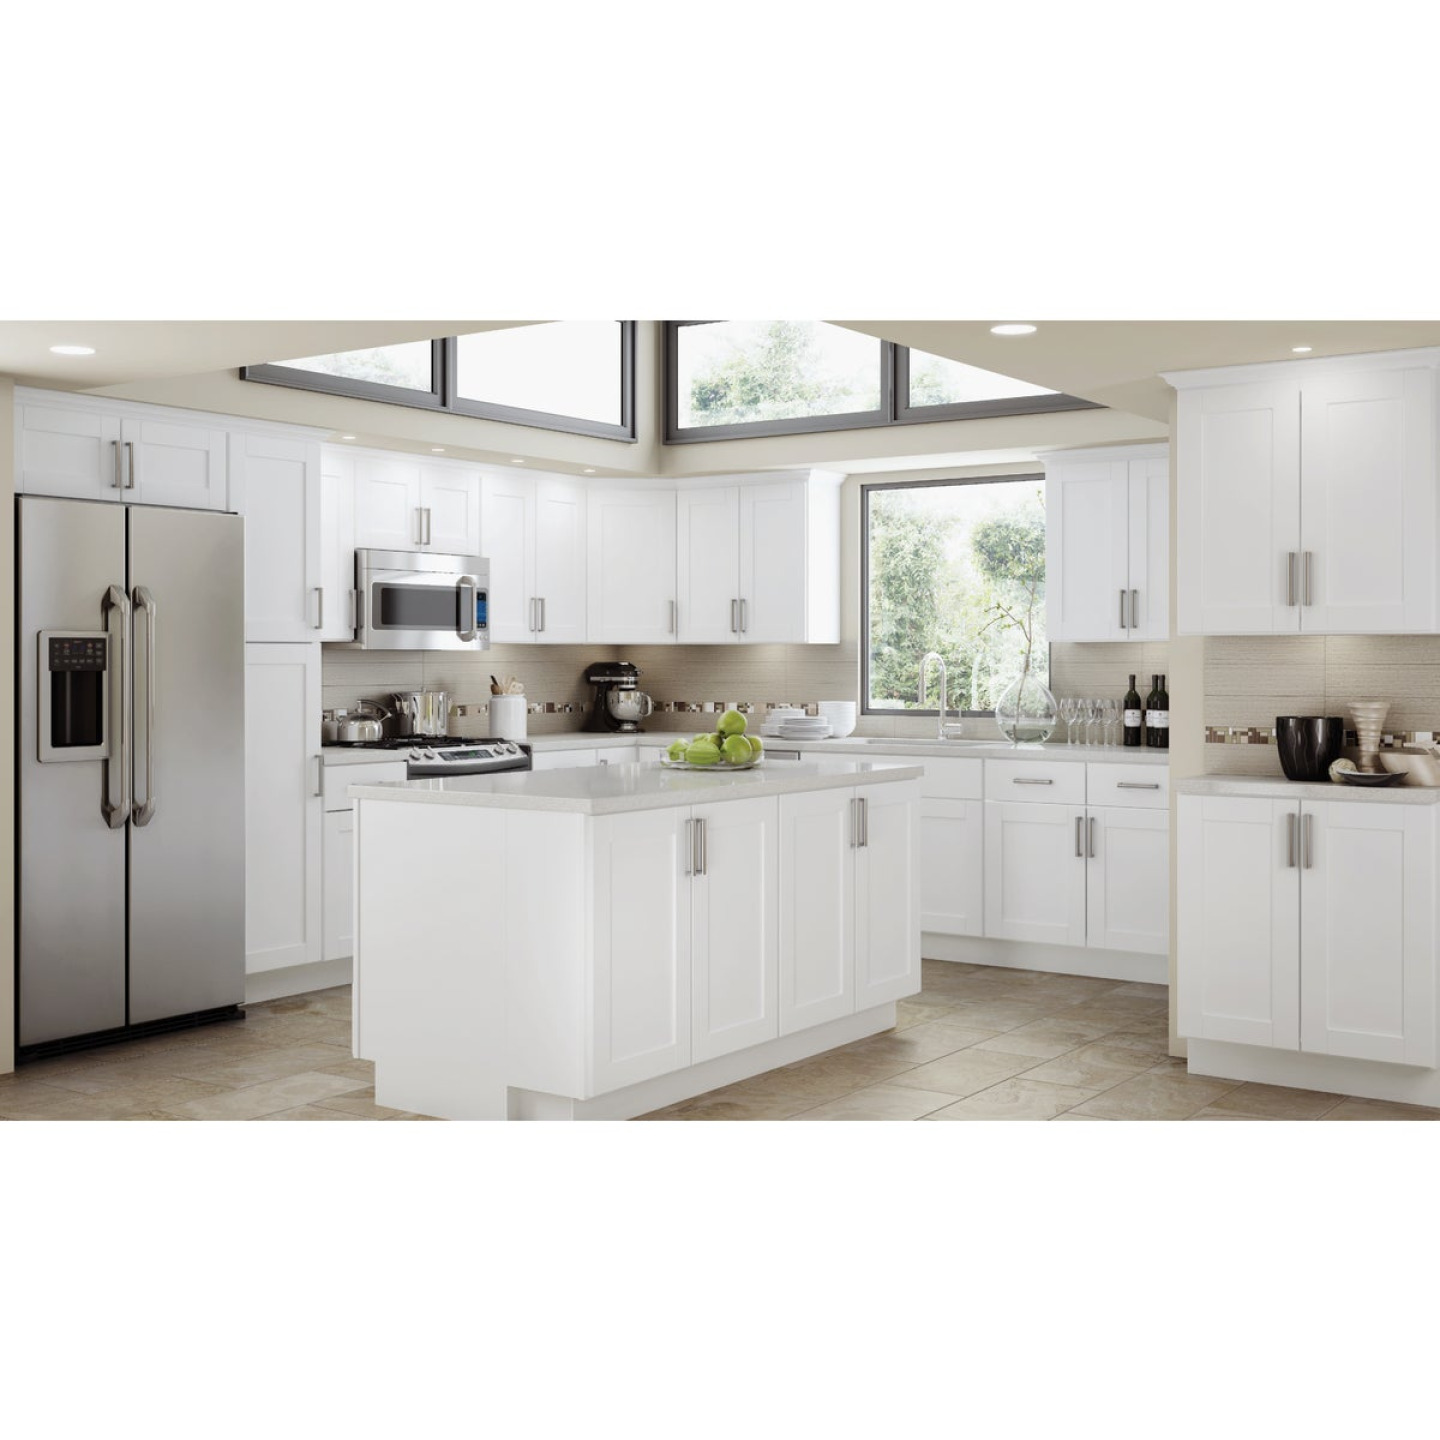 Continental Cabinets Andover Shaker 30 In. W x 34-1/2 In. H x 24 In. D White Thermofoil Sink Base Kitchen Cabinet Image 2